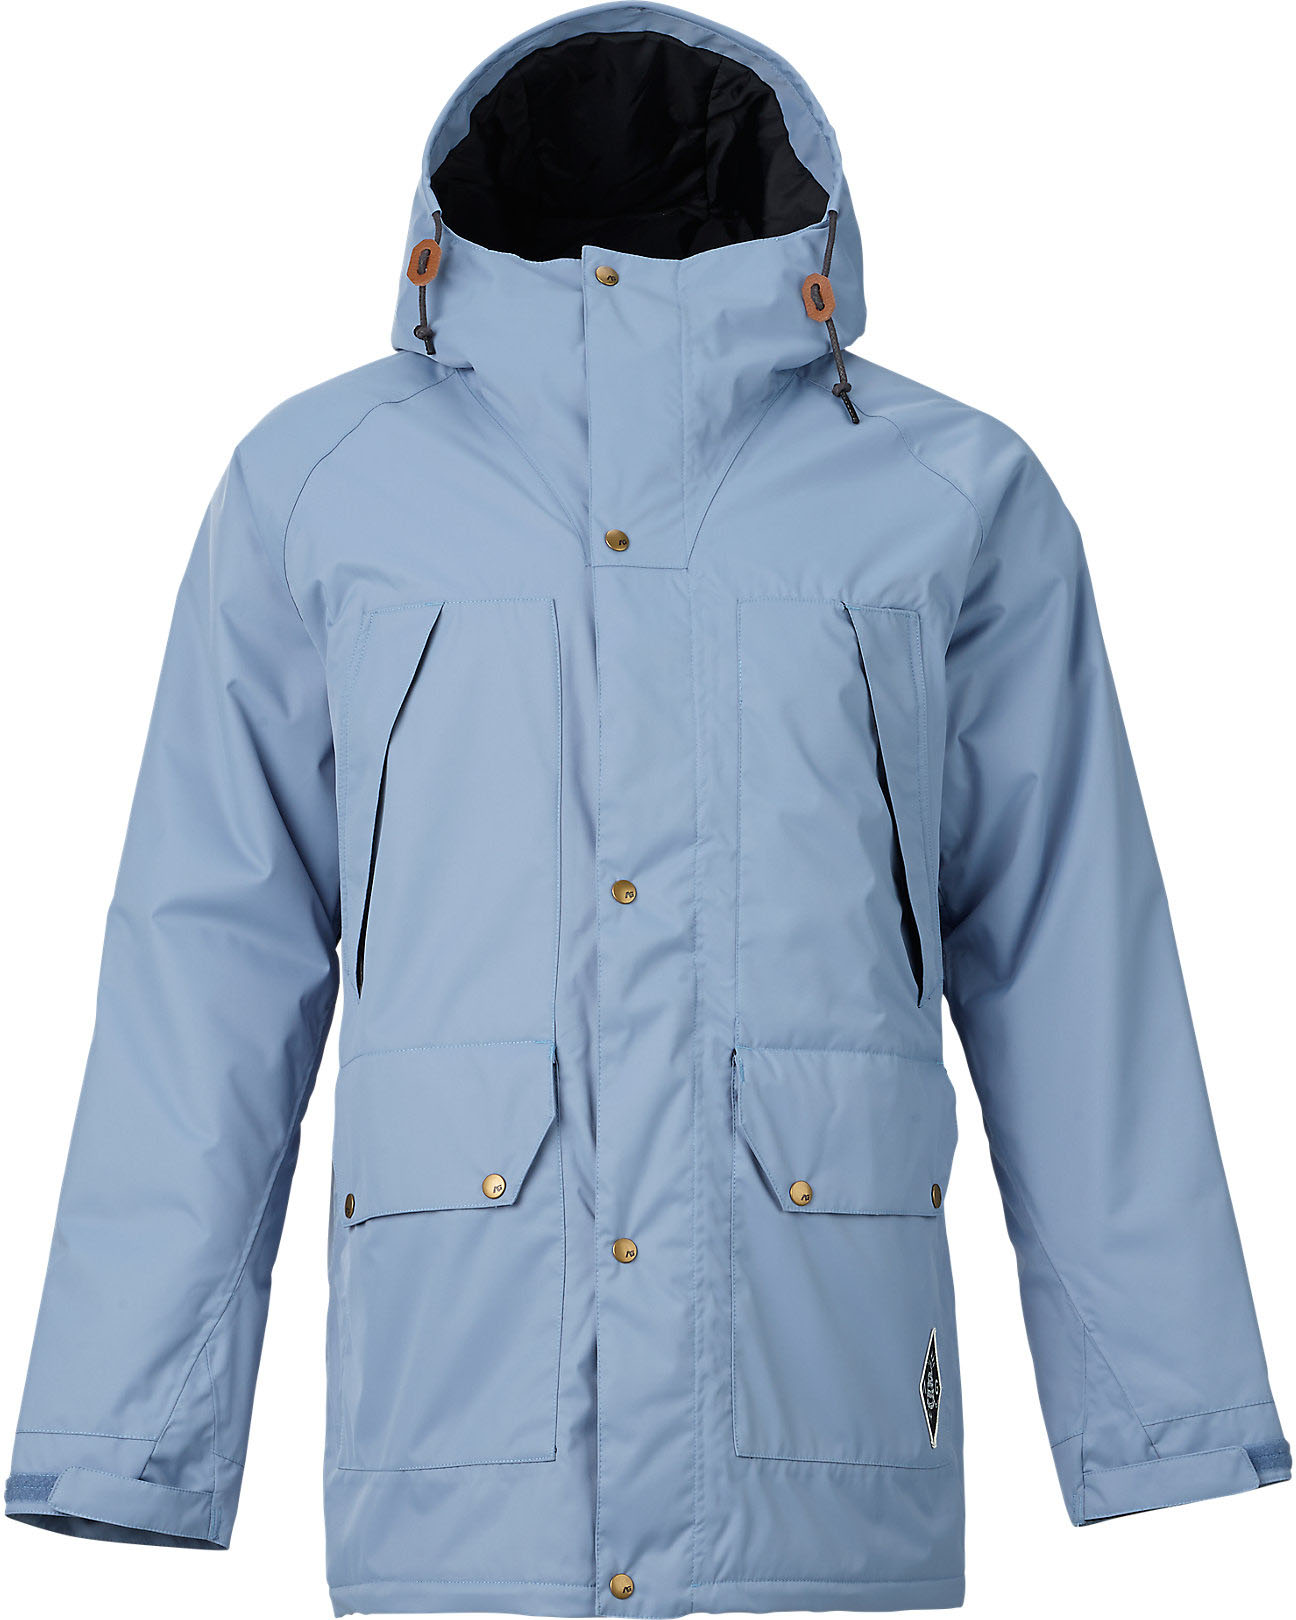 Analog Lennox Jacket Review The Good Ride